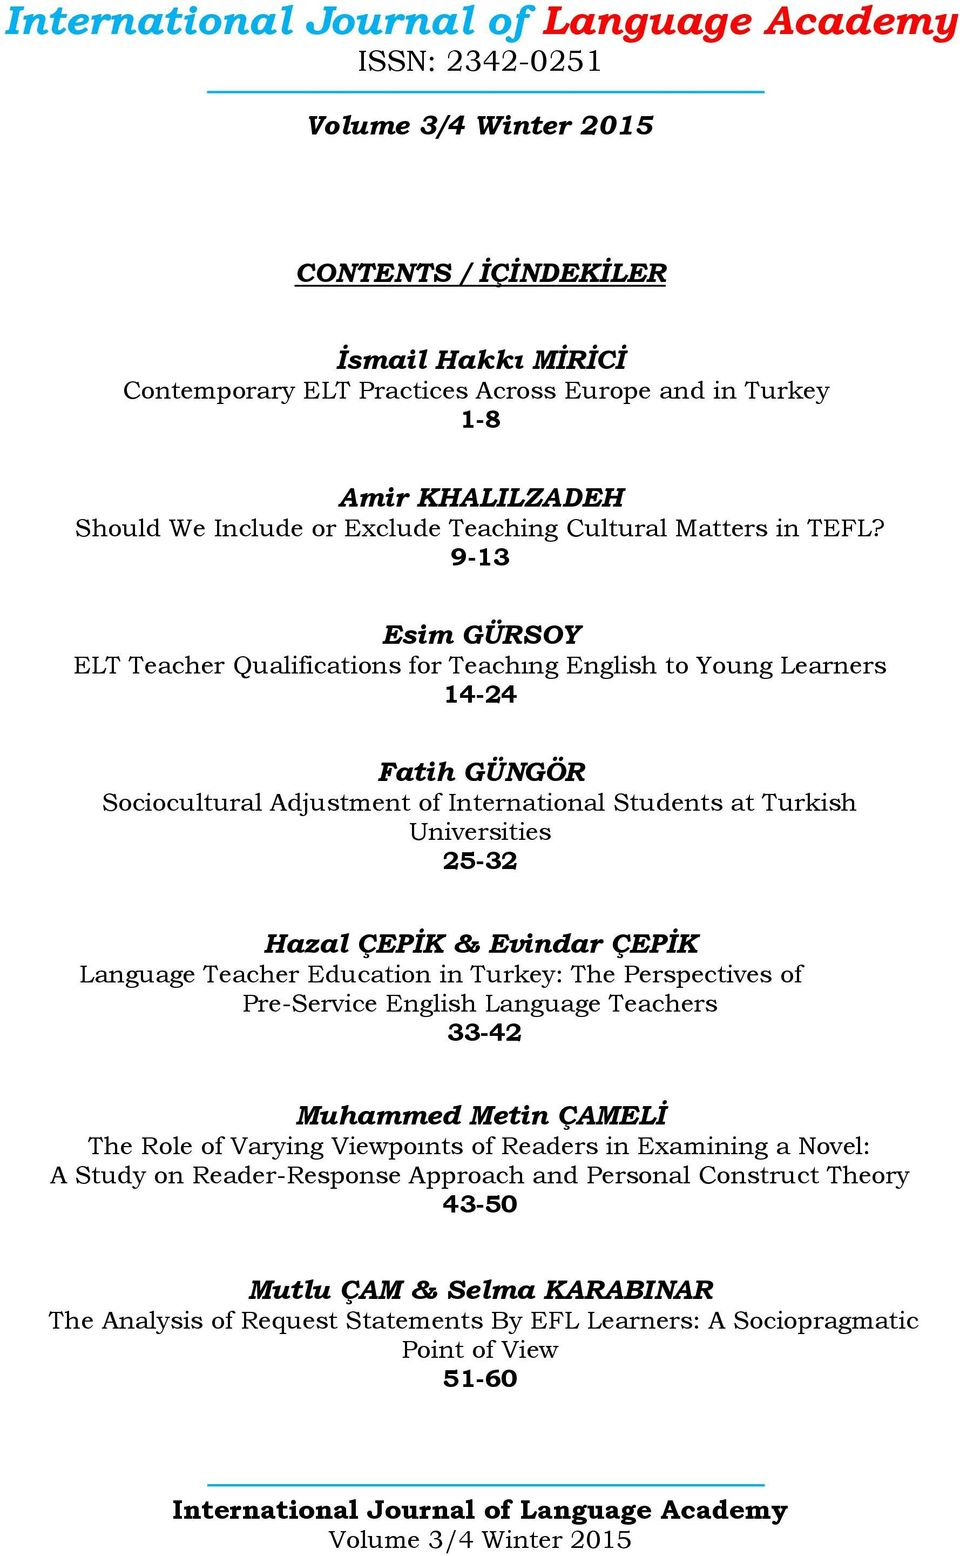 ÇEPİK & Evindar ÇEPİK Language Teacher Education in Turkey: The Perspectives of Pre-Service English Language Teachers 33-42 Muhammed Metin ÇAMELİ The Role of Varying Viewpoınts of Readers in